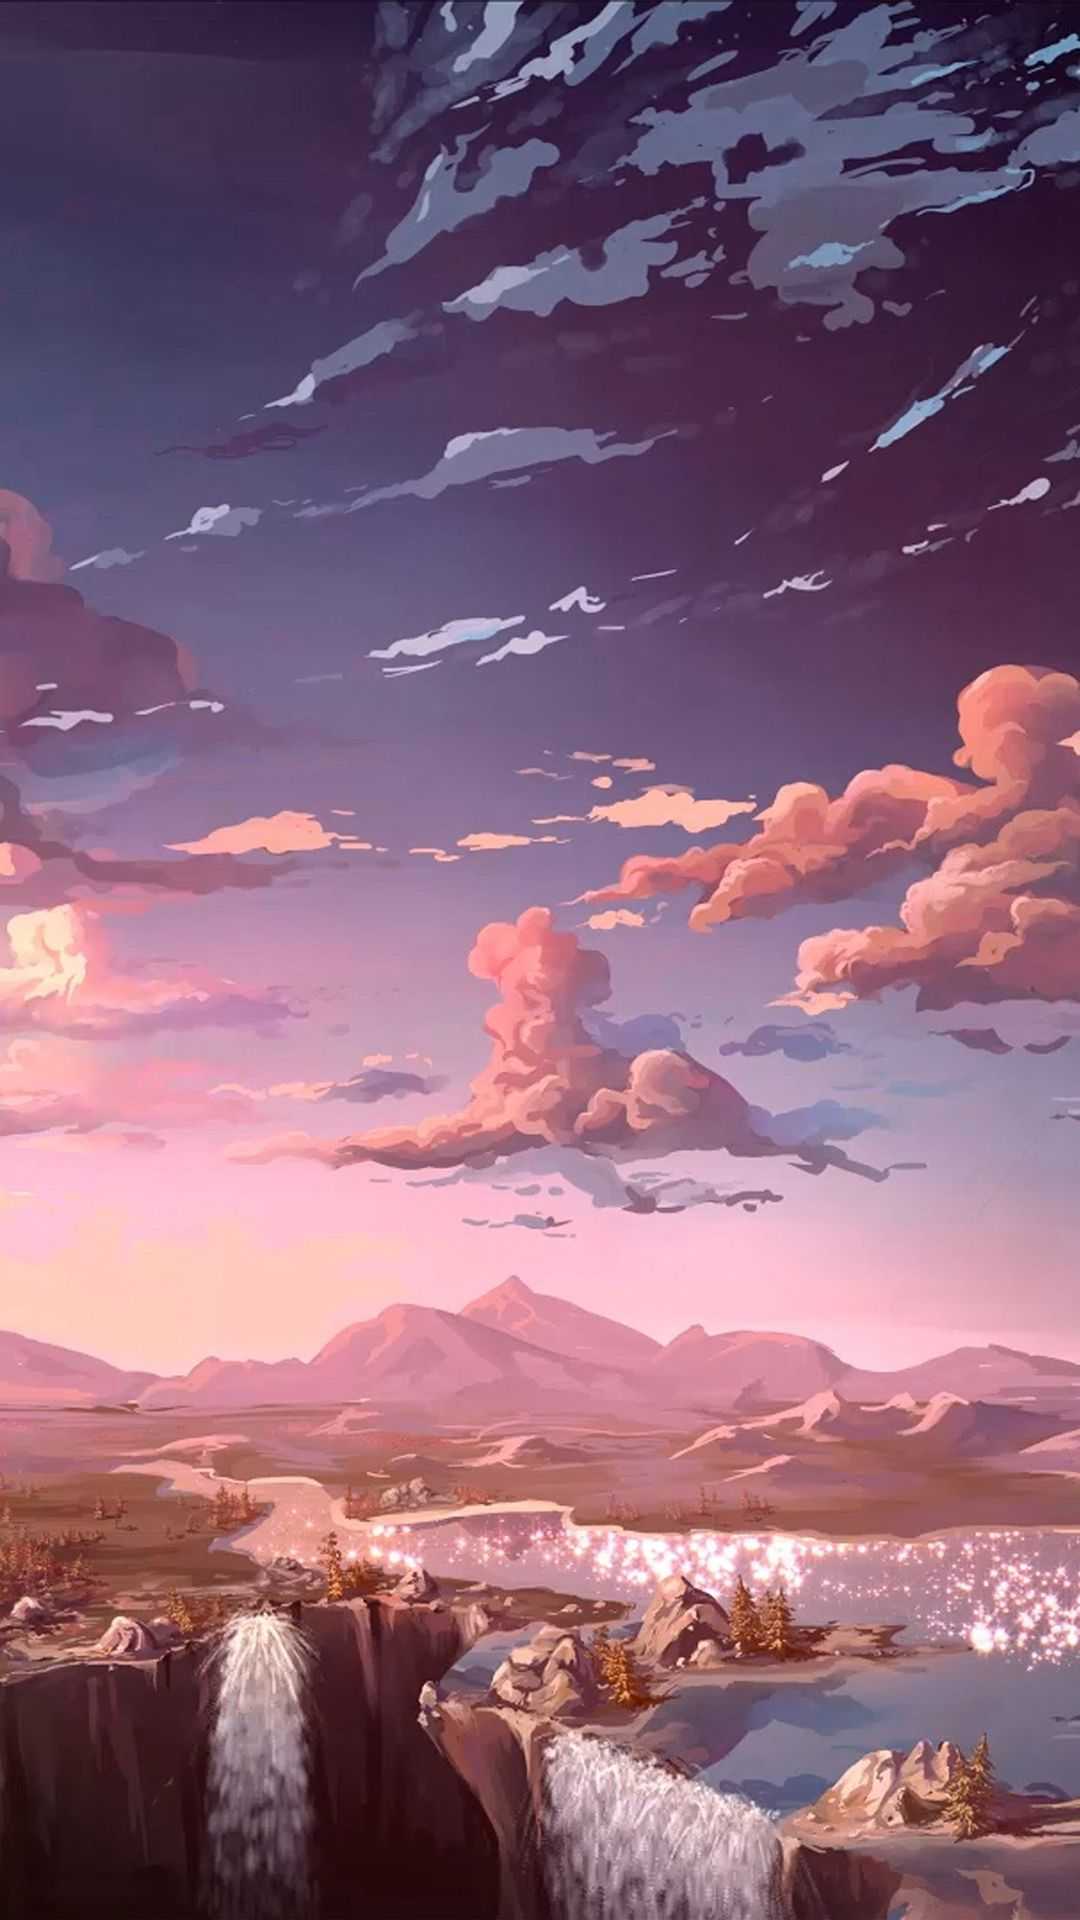 Aesthetic Pictures Landscape Wallpaper Scenery Wallpaper Anime Wallpaper Iphone